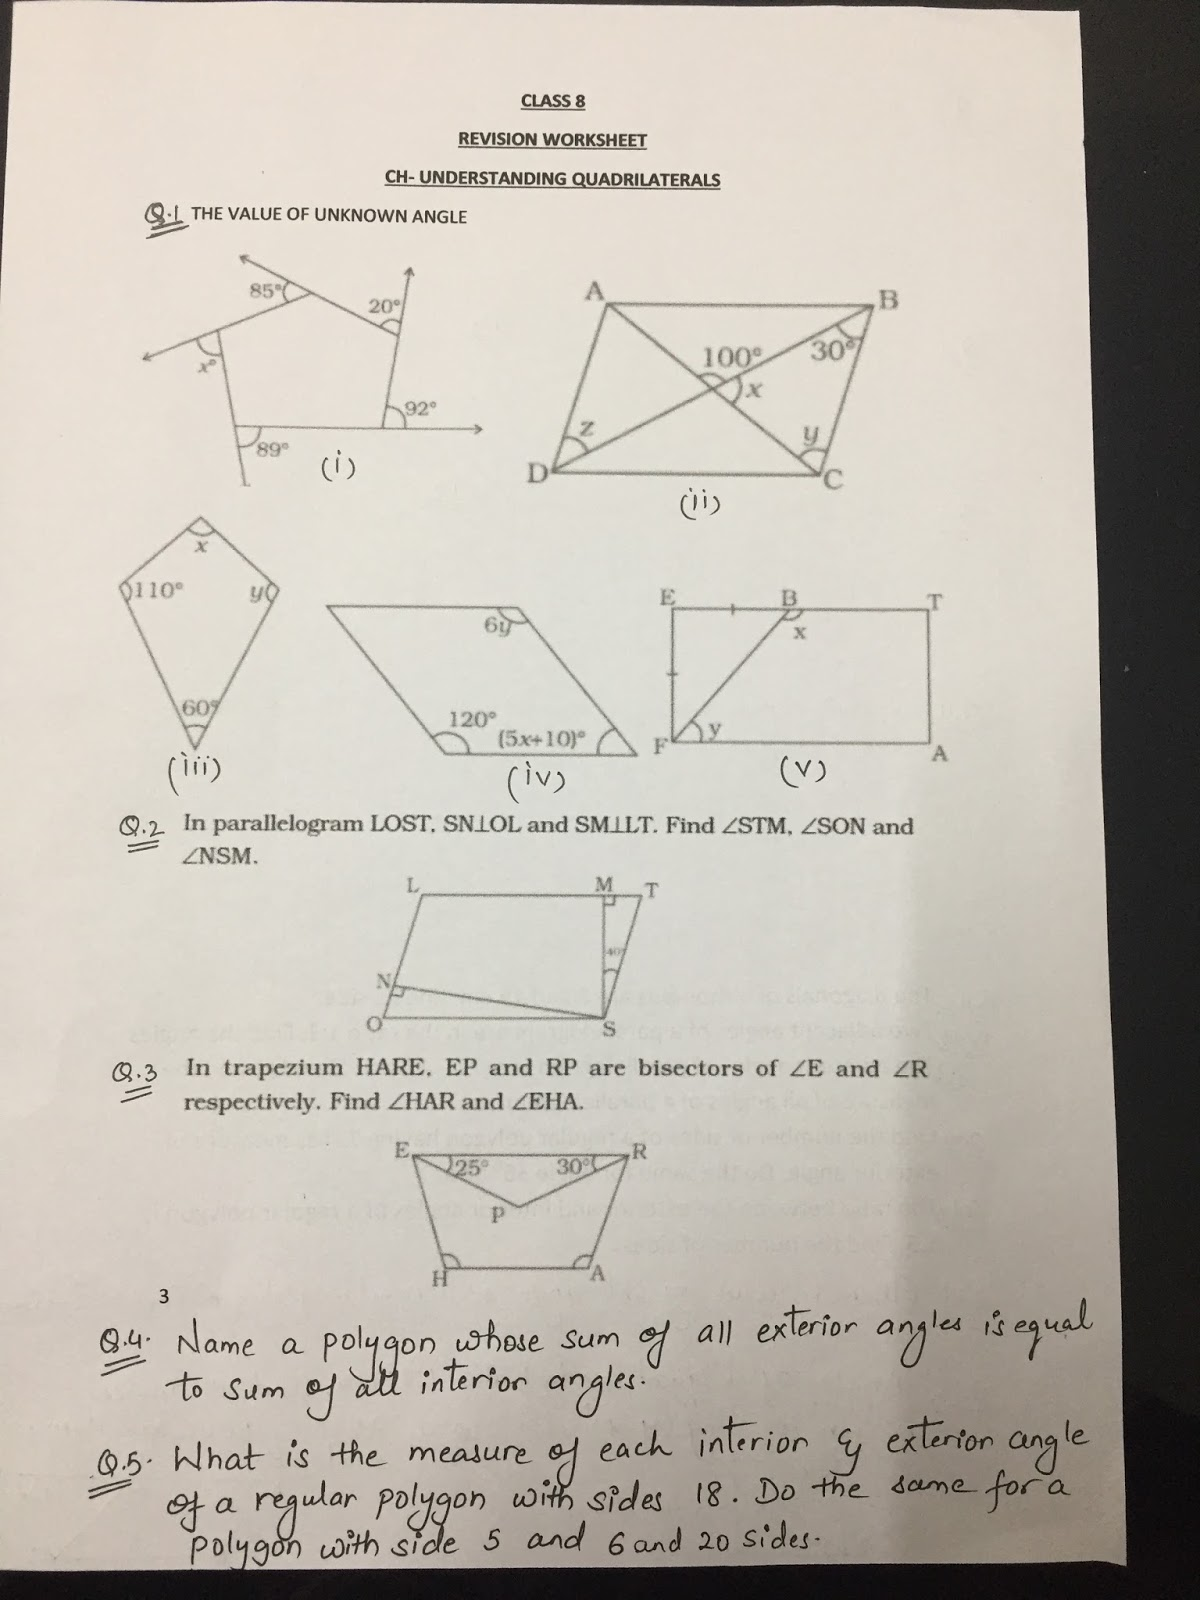 Quadrilaterals Worksheet With Answers   Printable Worksheets and Activities  for Teachers [ 1600 x 1200 Pixel ]